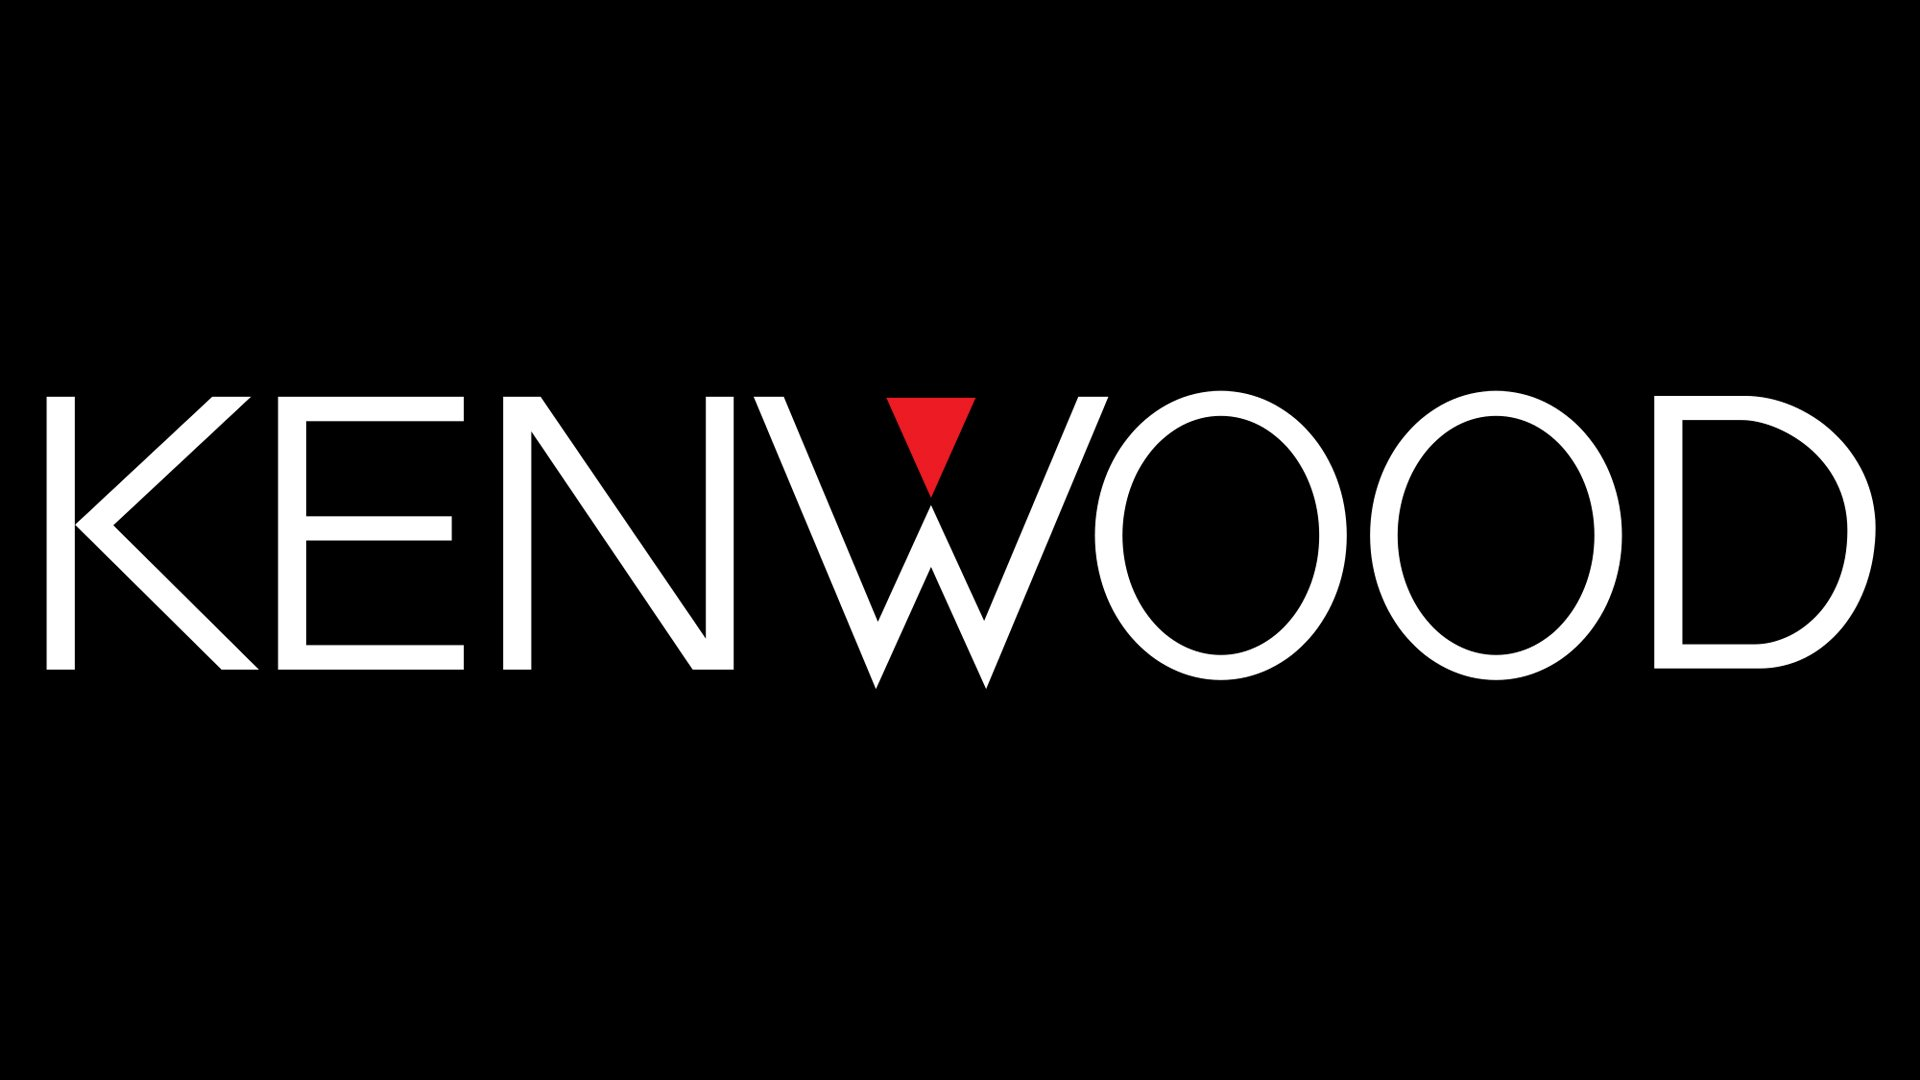 kenwood logo kenwood symbol meaning history and evolution